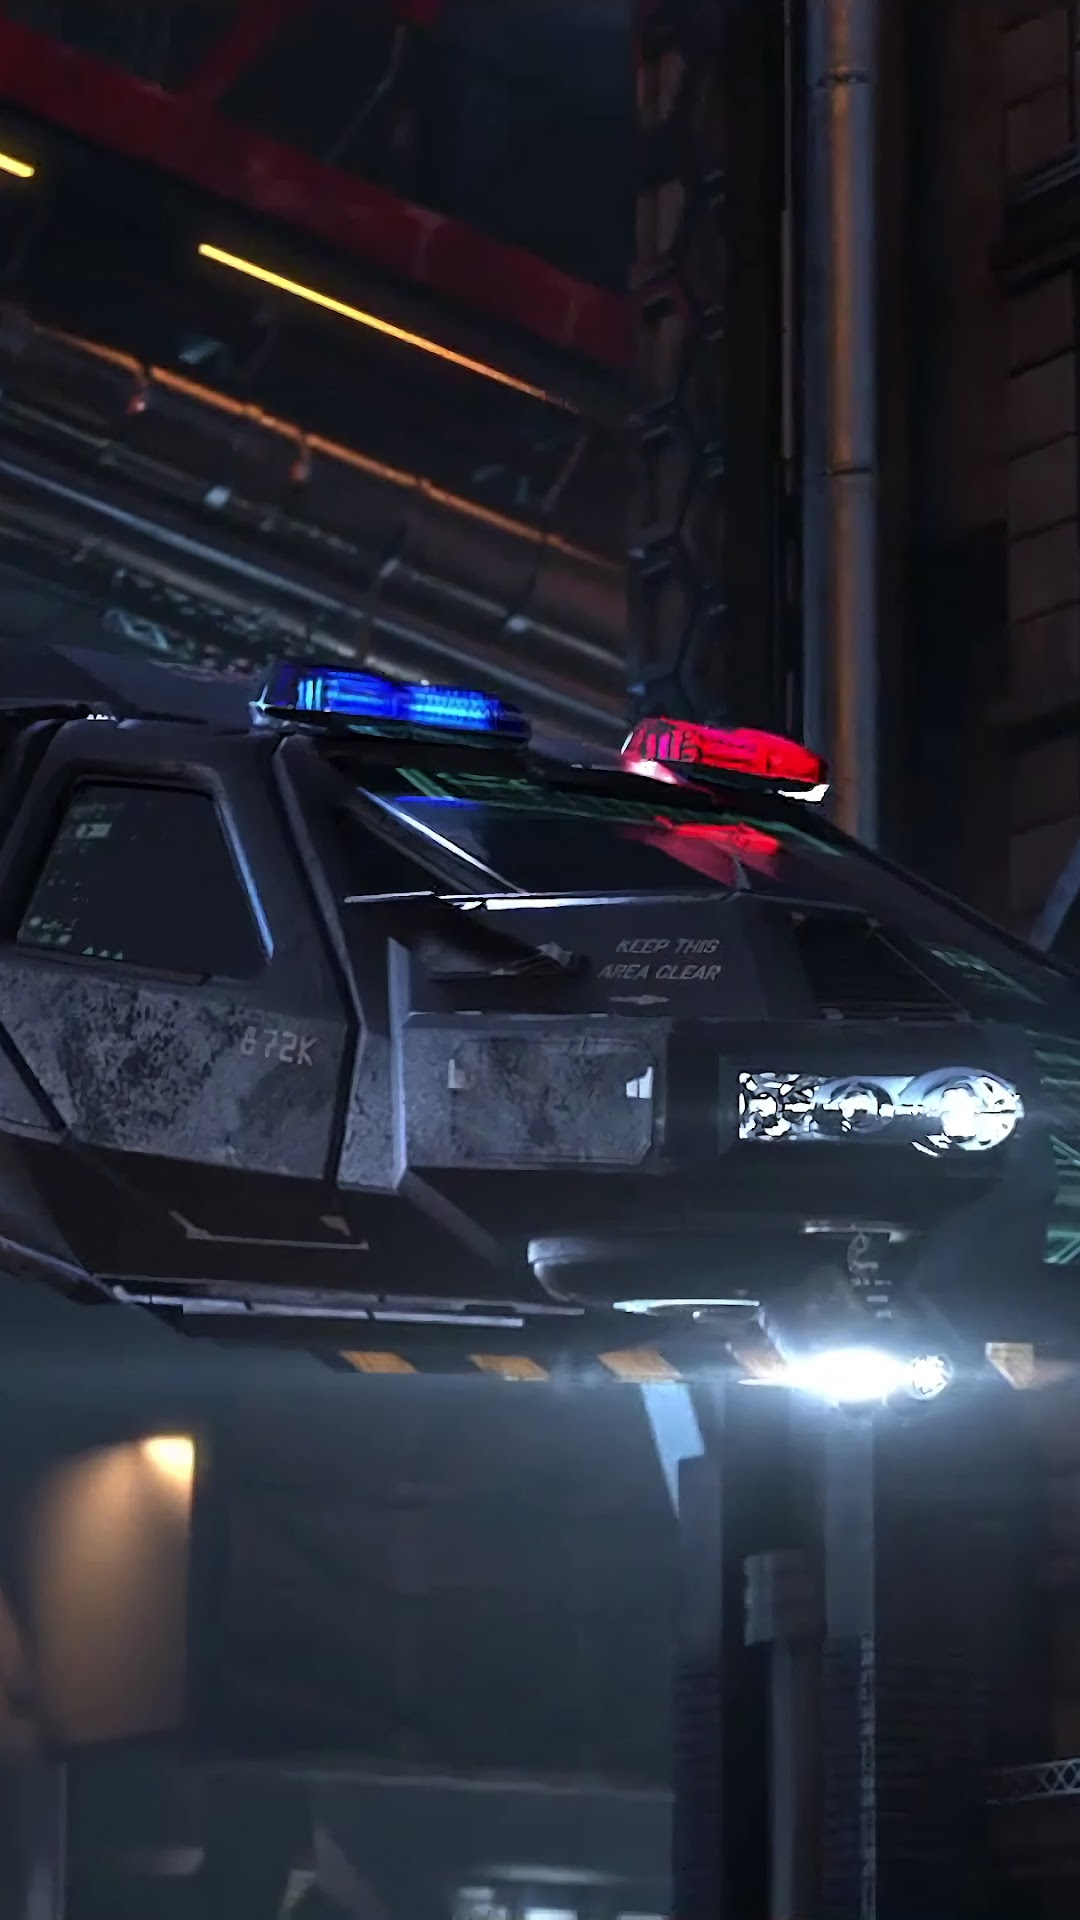 Cyberpunk 2077 Police Car 4k Wallpaper 7